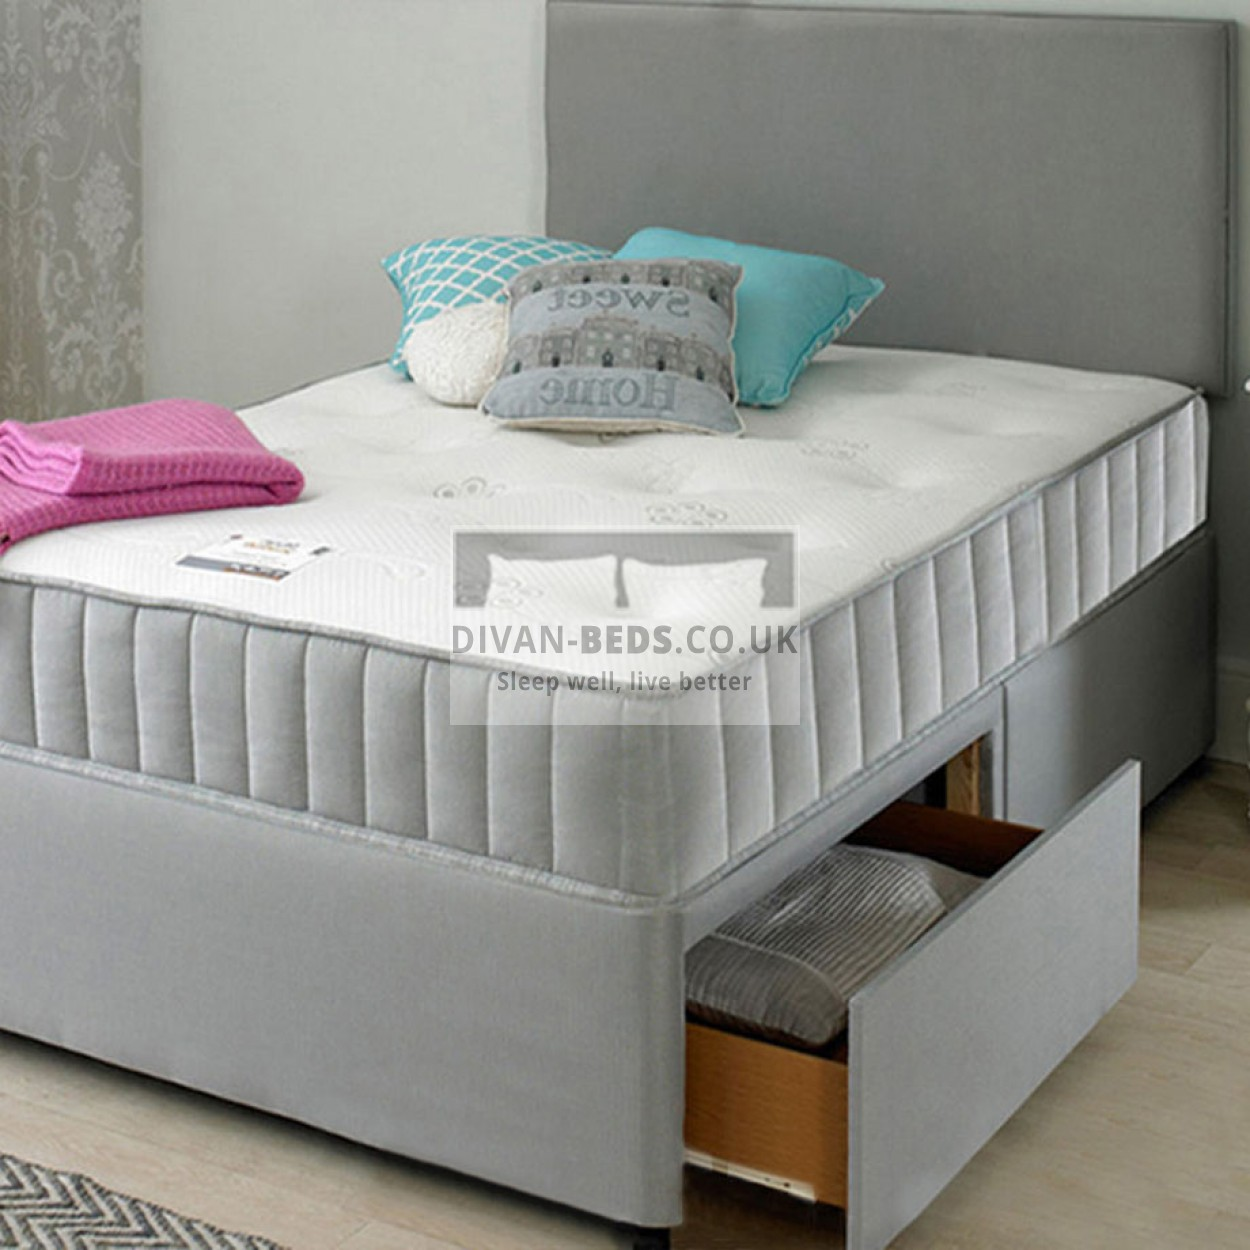 Wallace Divan Bed With Spring Memory Foam Mattress Guaranteed Cheapest Free Fast Delivery